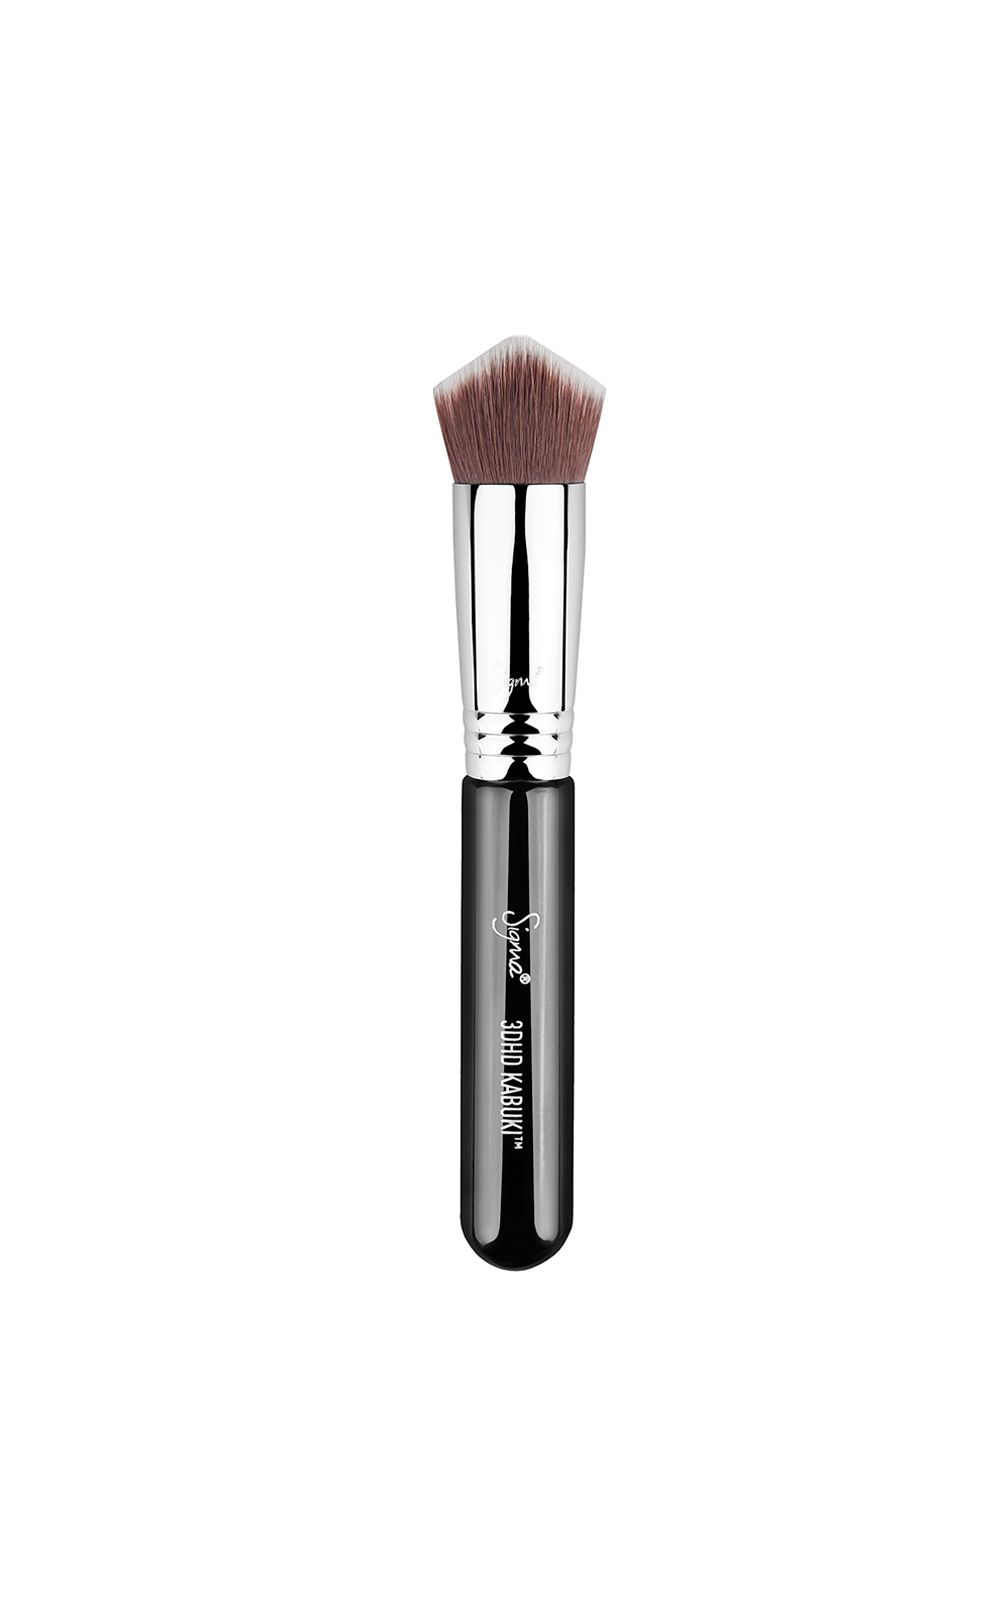 Foto 1 - Pincel Sigma Beauty - 3DHD Kabuki Brush Black - 1 Un